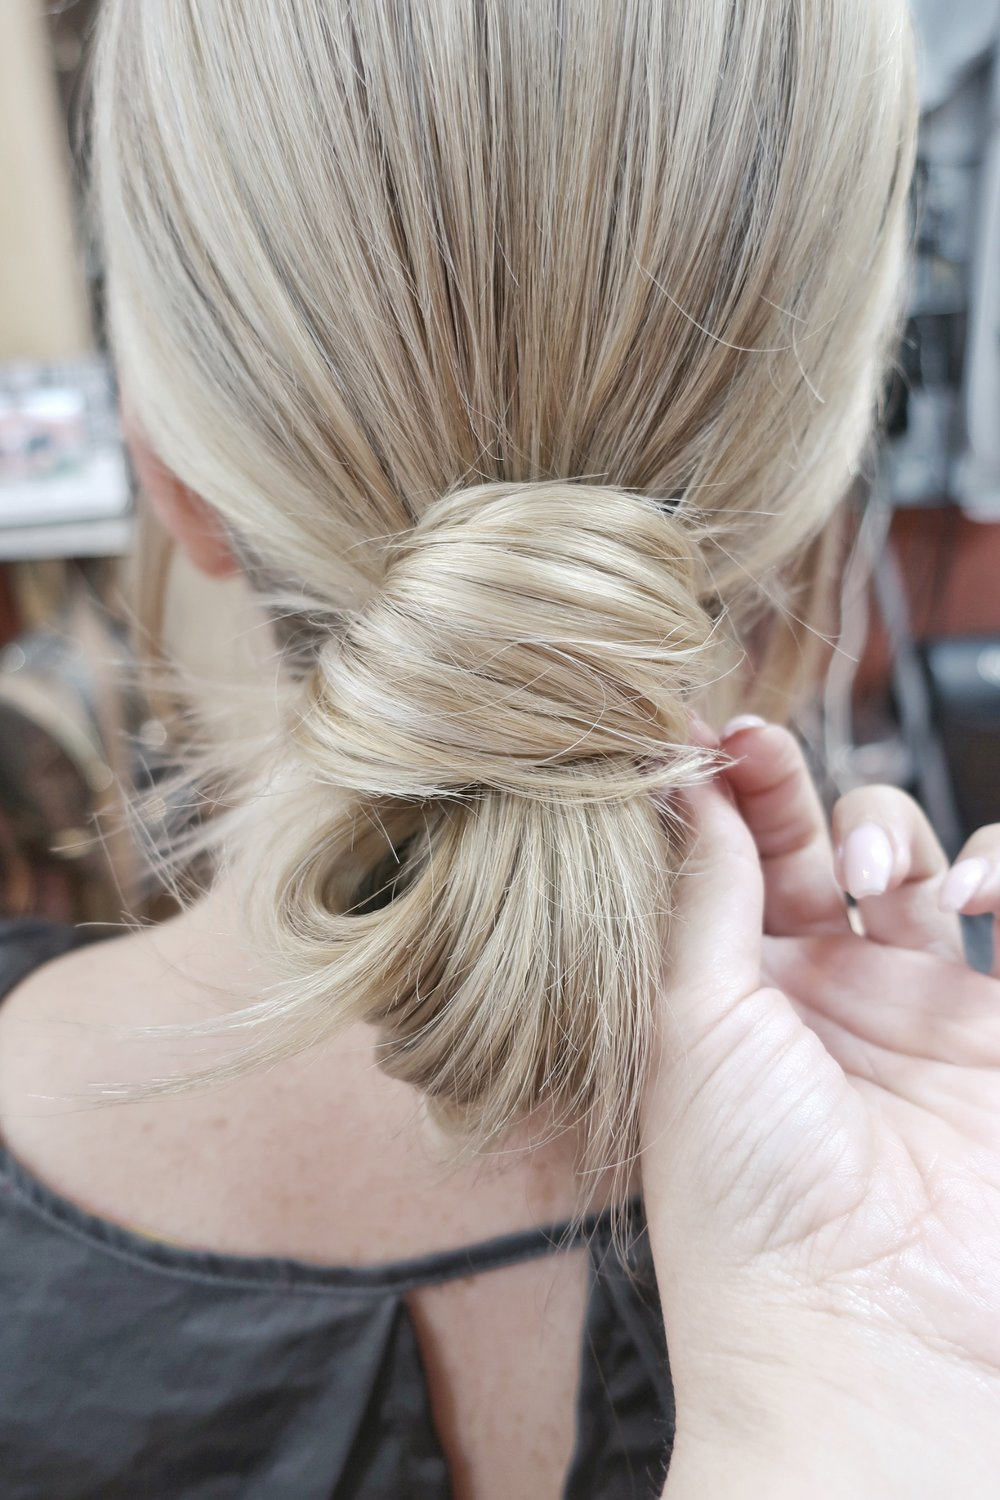 Now take the left over hair from your bun and wrap over the top of hair tie until you hit the back. Pull remainder of hair through the tie to hold in place. Use bobby pins to pin in place.